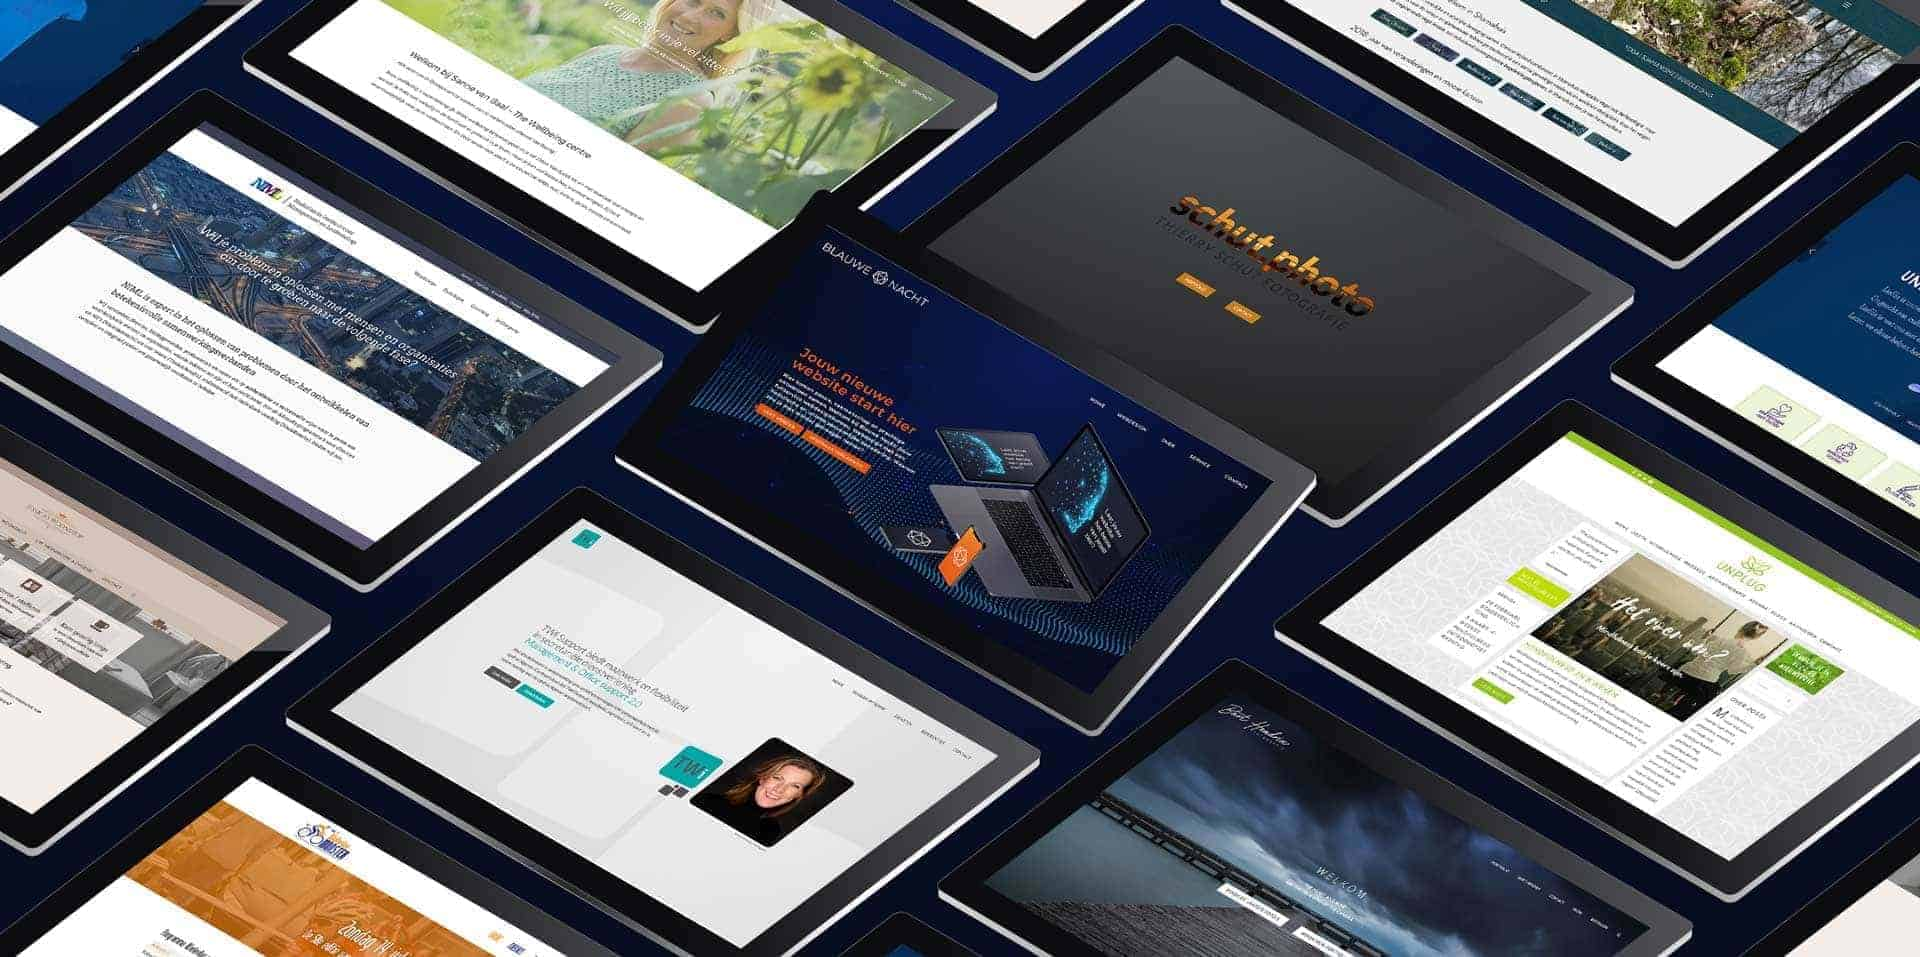 Blauwe Nacht webdesign websites in grid view